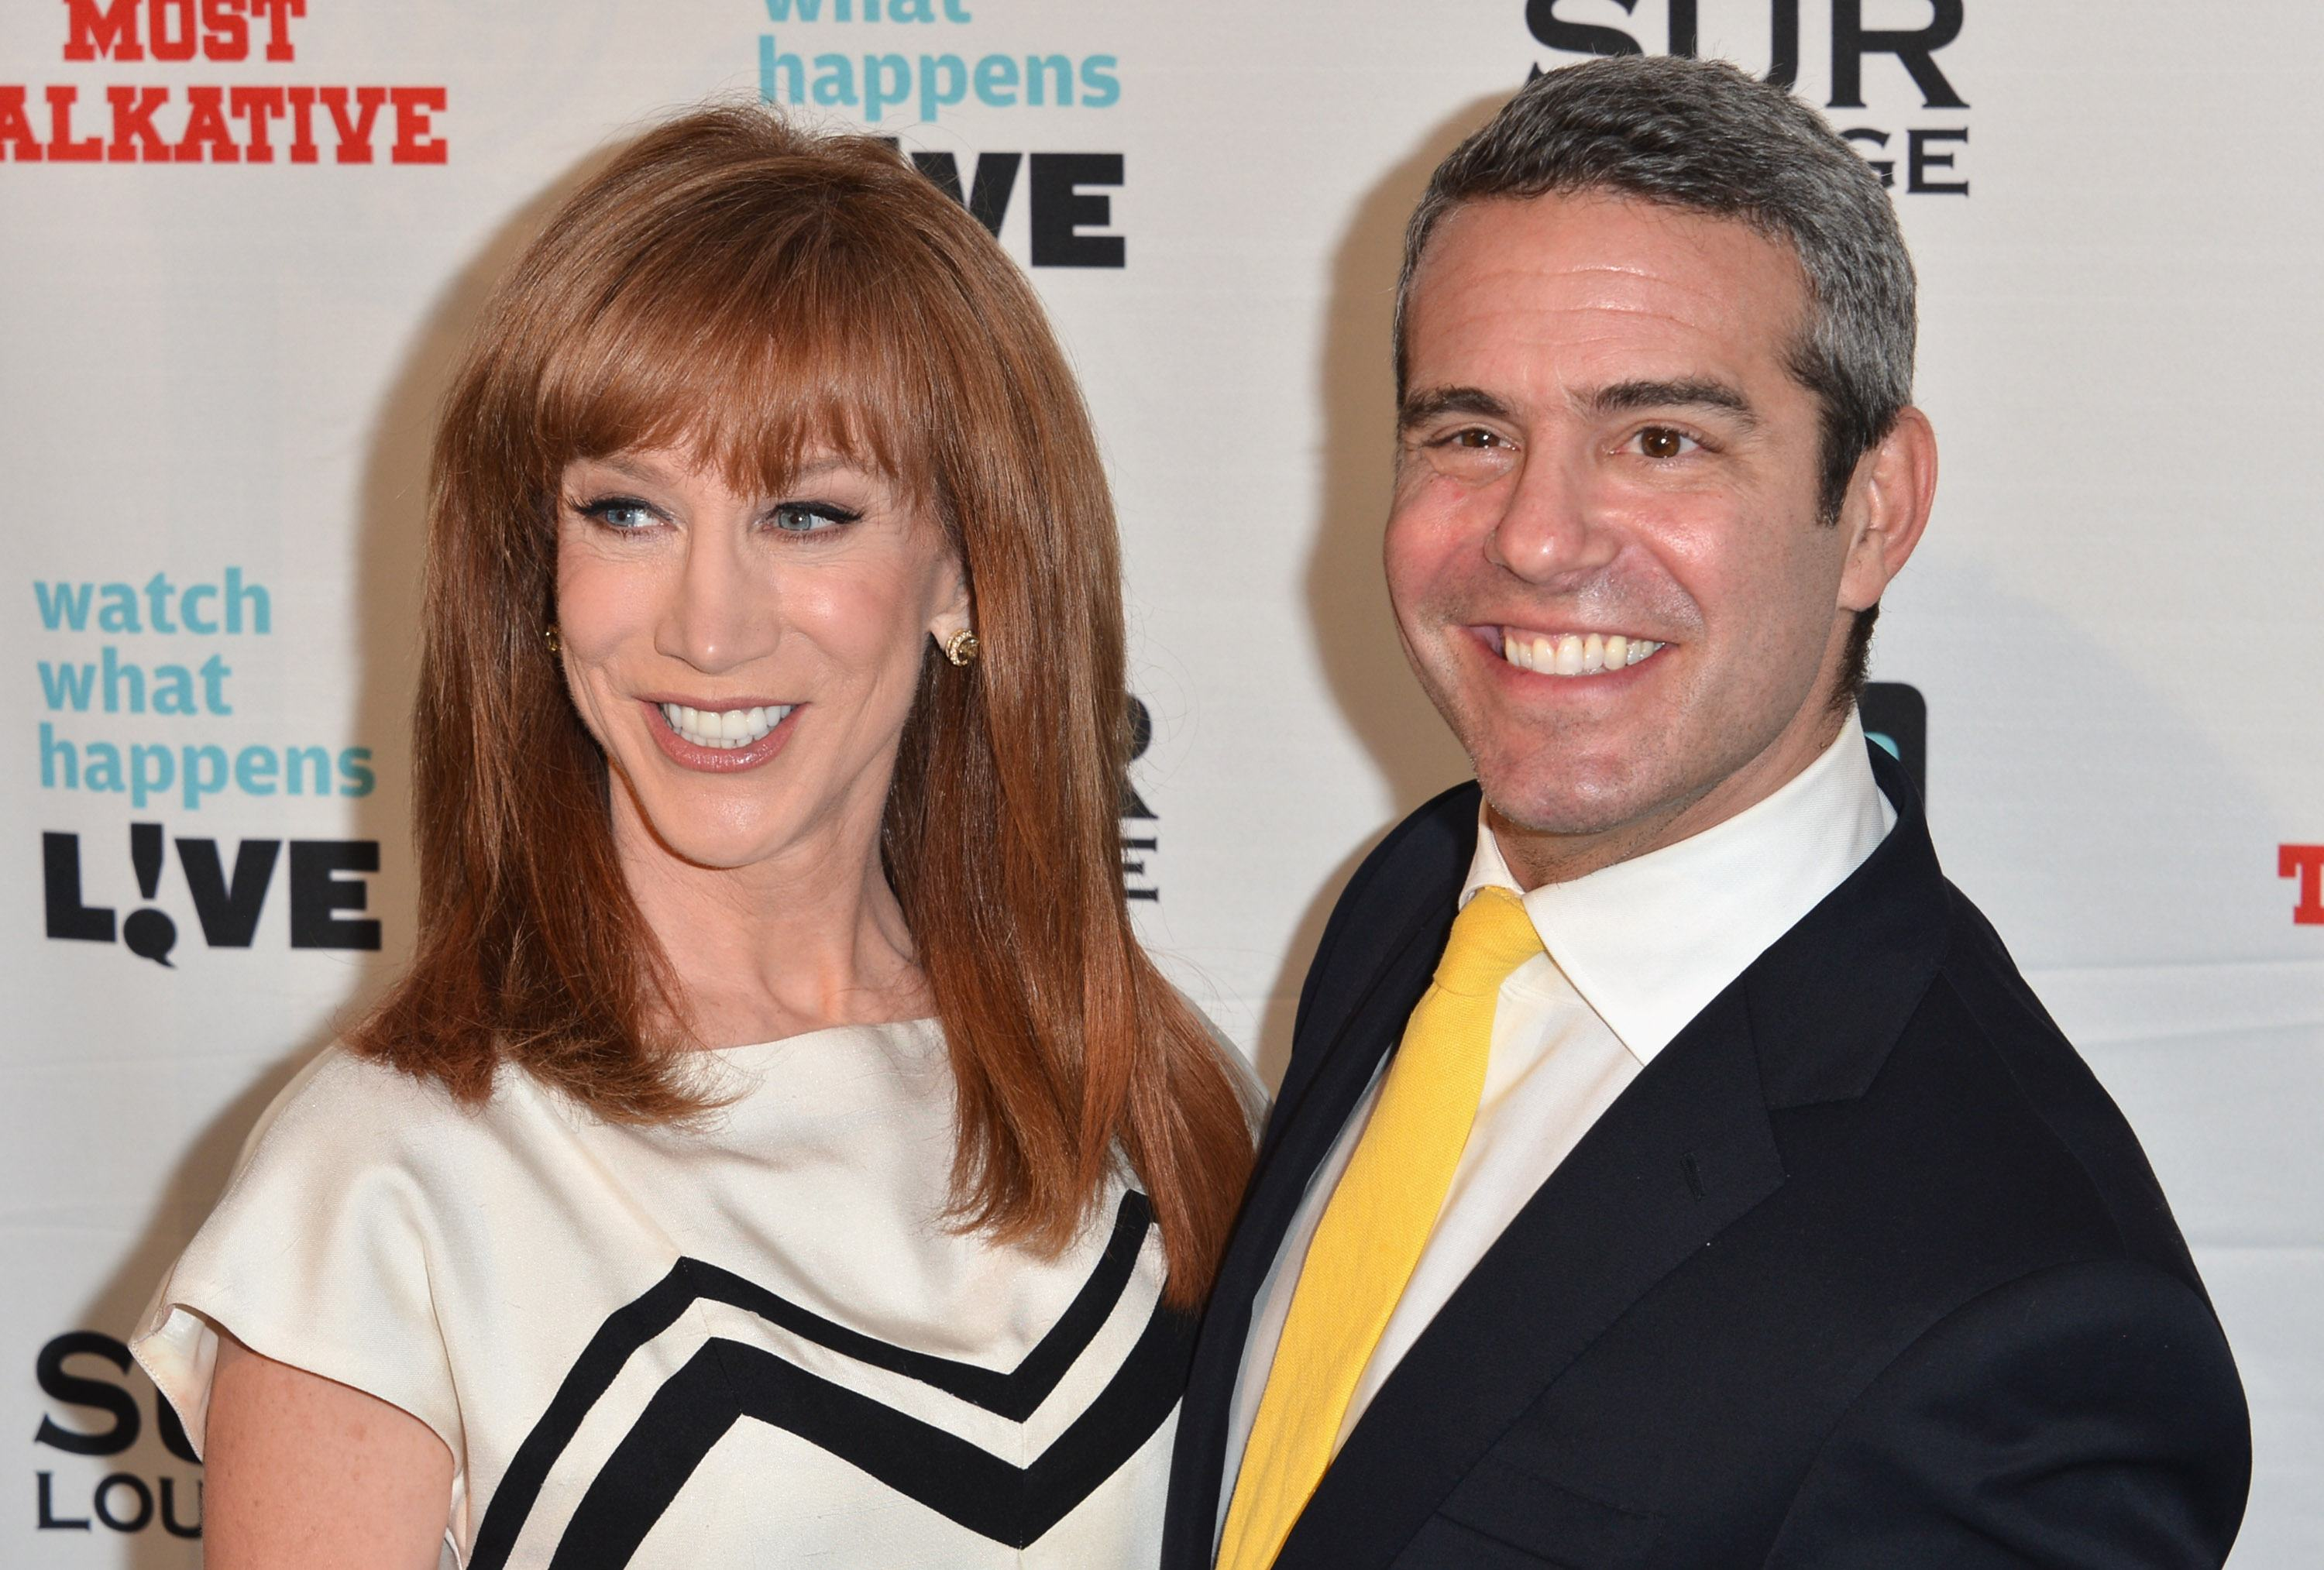 Andy Cohen and Kathy Griffin Feud: Shocking Drug Abuse Claims and ...